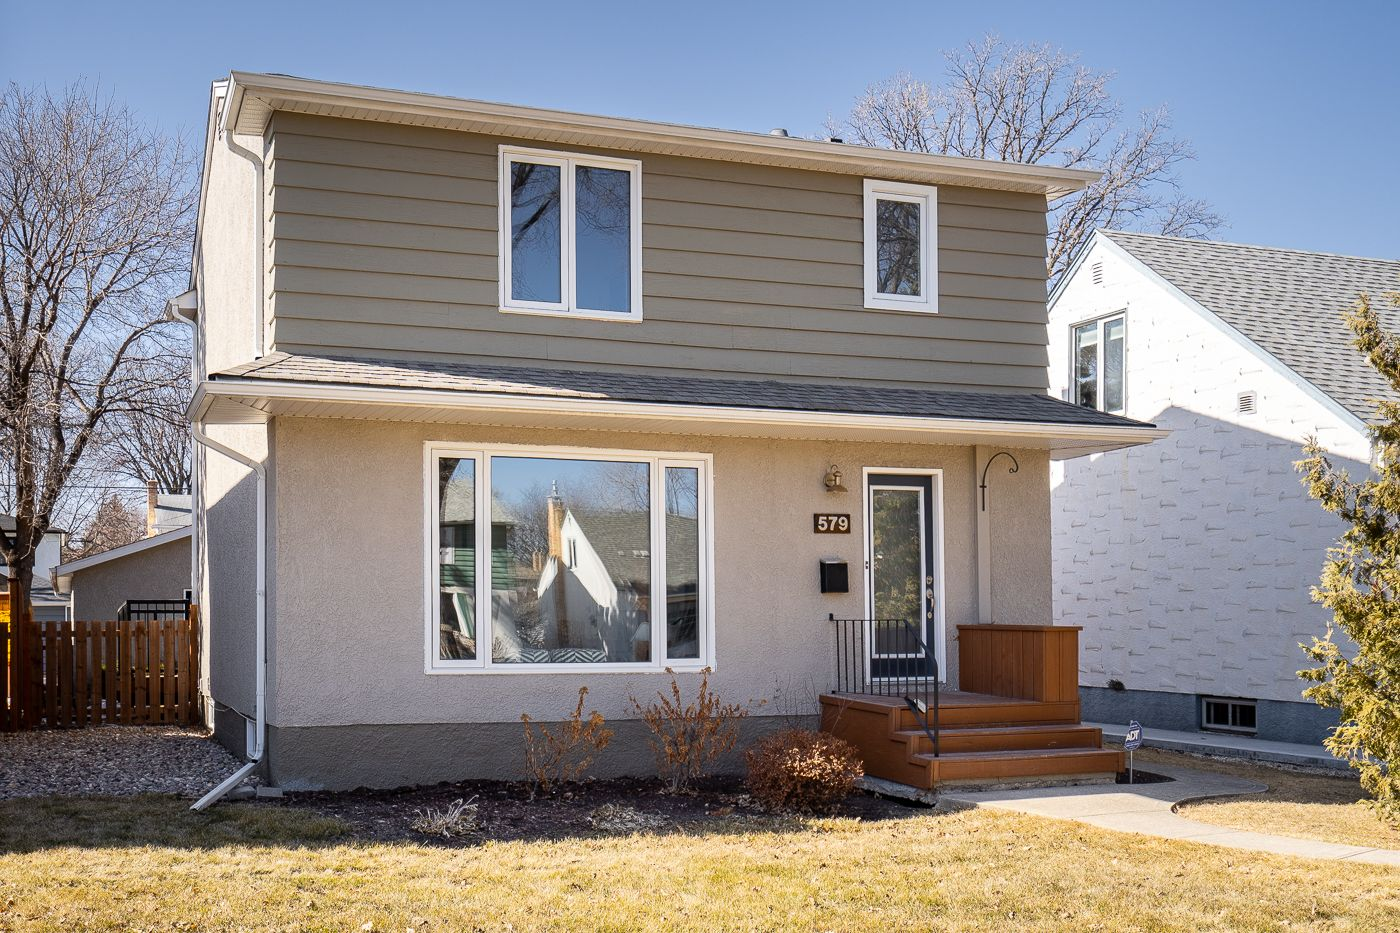 Main Photo: 579 Montrose Street in Winnipeg: River Heights House for sale (1D)  : MLS®# 202105943